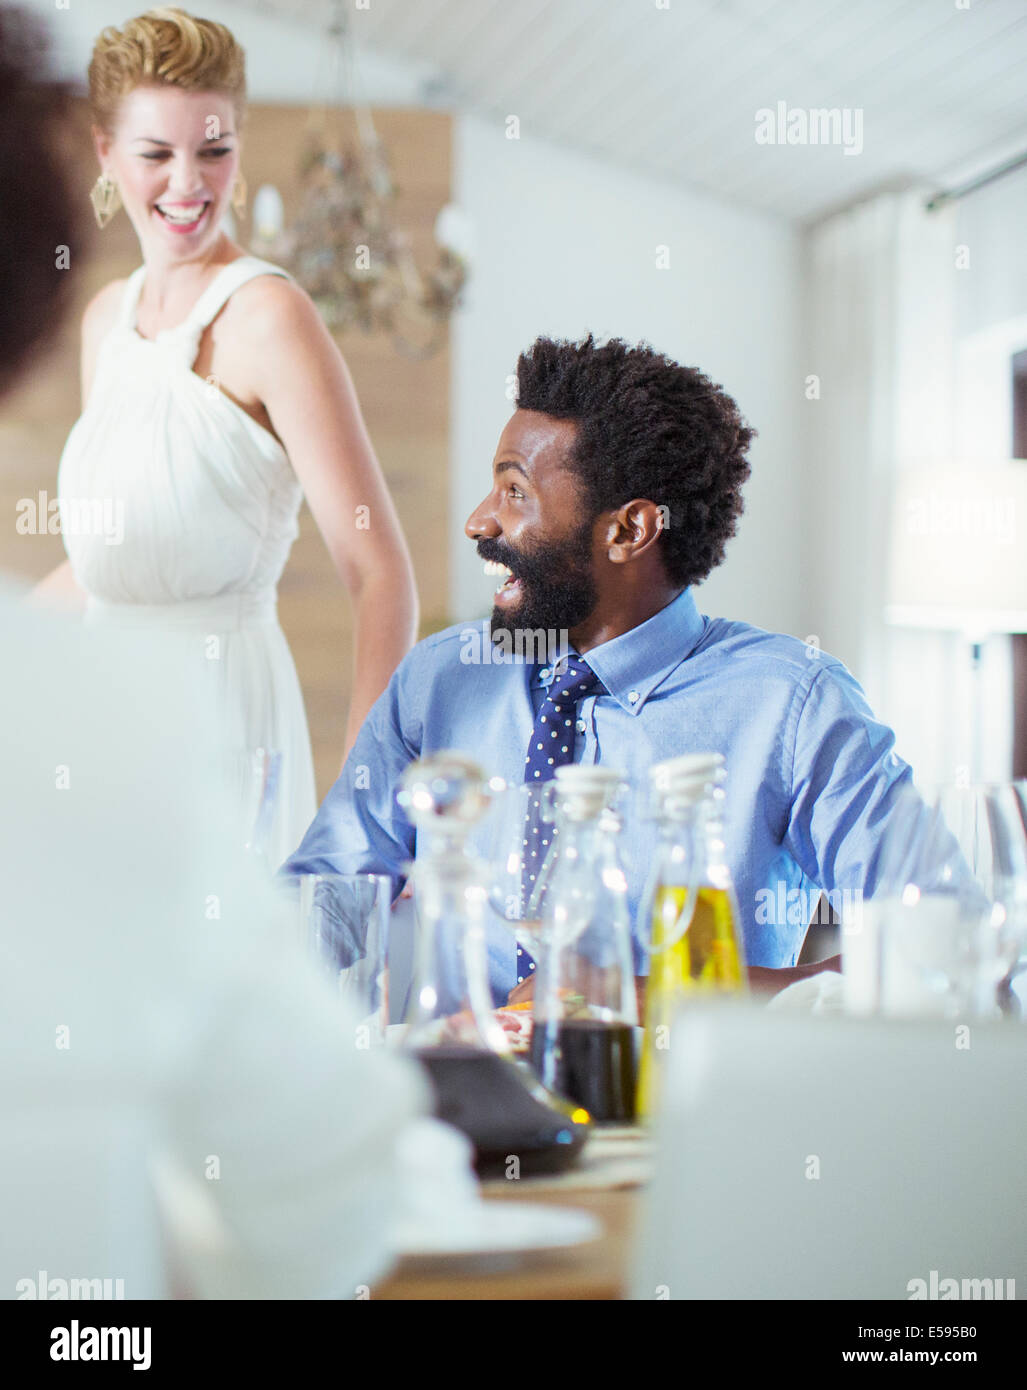 Man laughing at dinner party Photo Stock